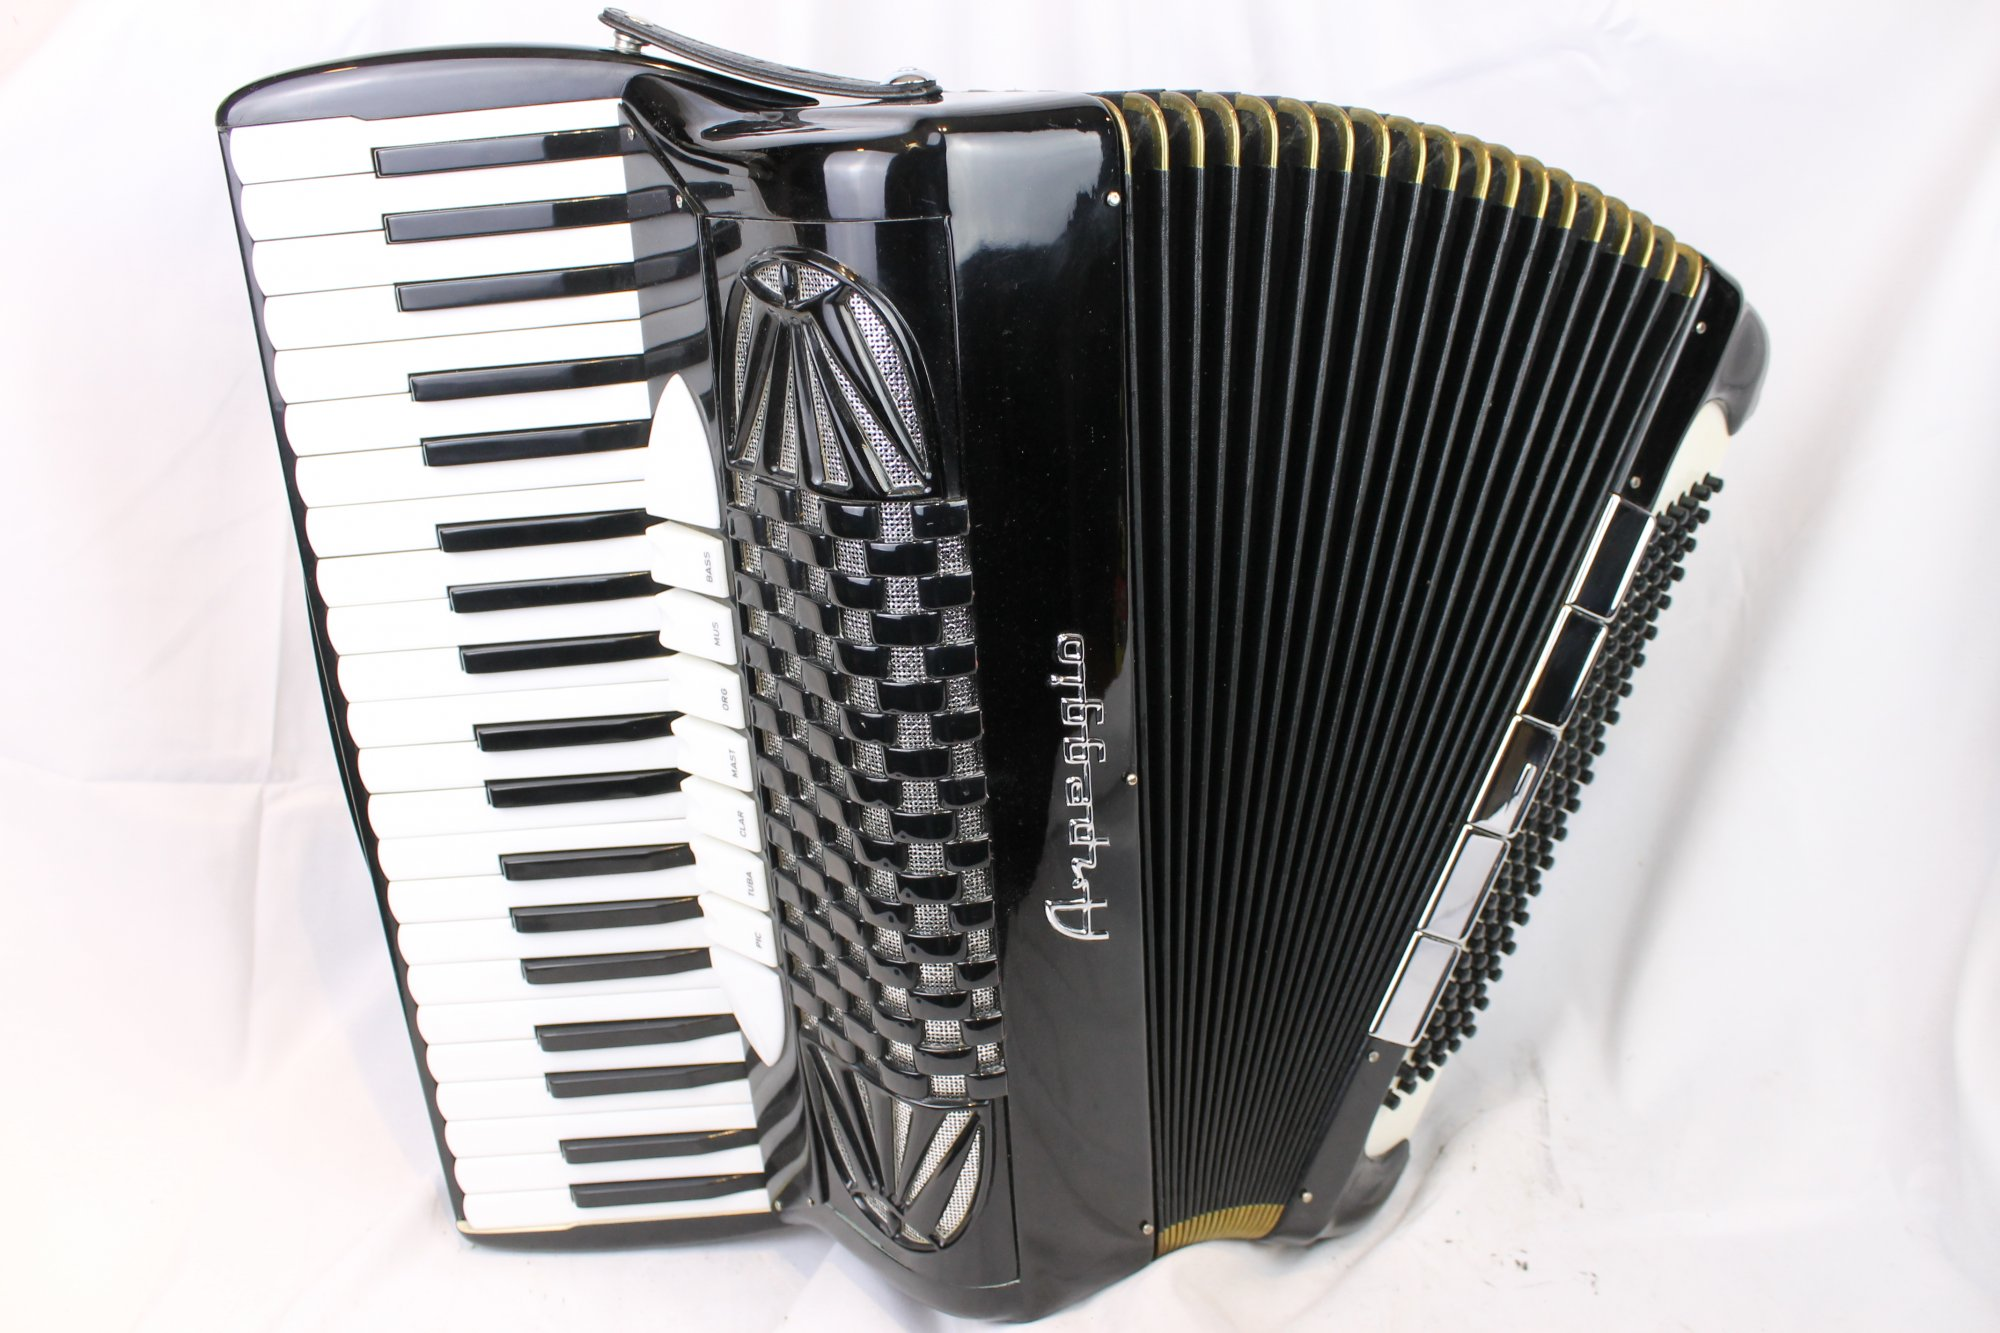 4095 - Black Arpeggio Piano Accordion LMH 41 120